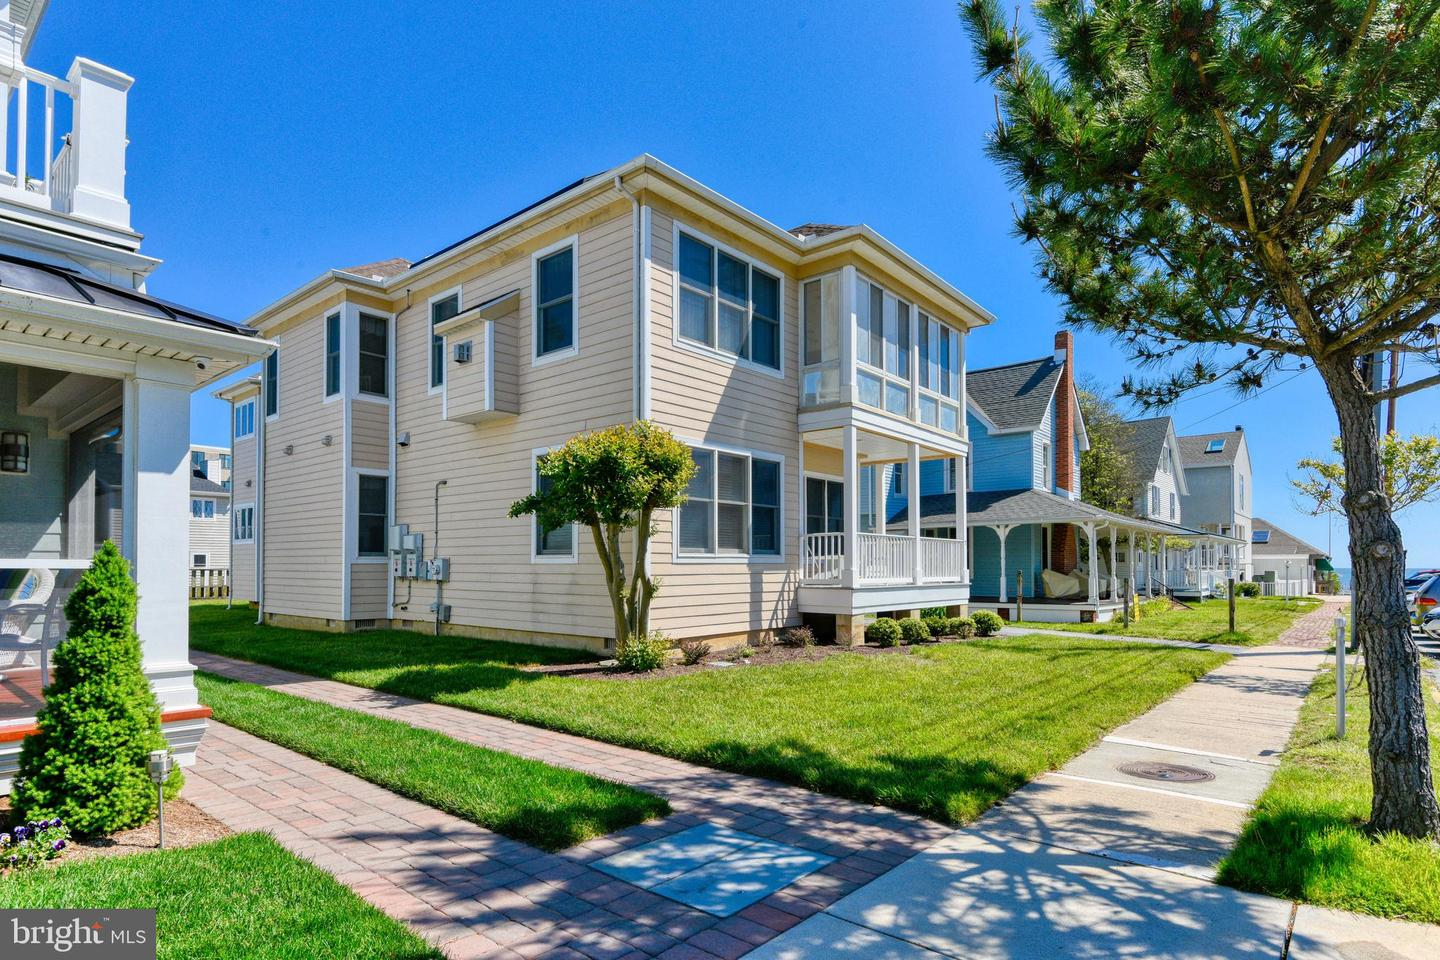 DESU140752-301729565123-2019-05-20-15-11-27 7 Olive Ave | Rehoboth Beach, DE Real Estate For Sale | MLS# Desu140752  - Coldwell Banker Resort Realty